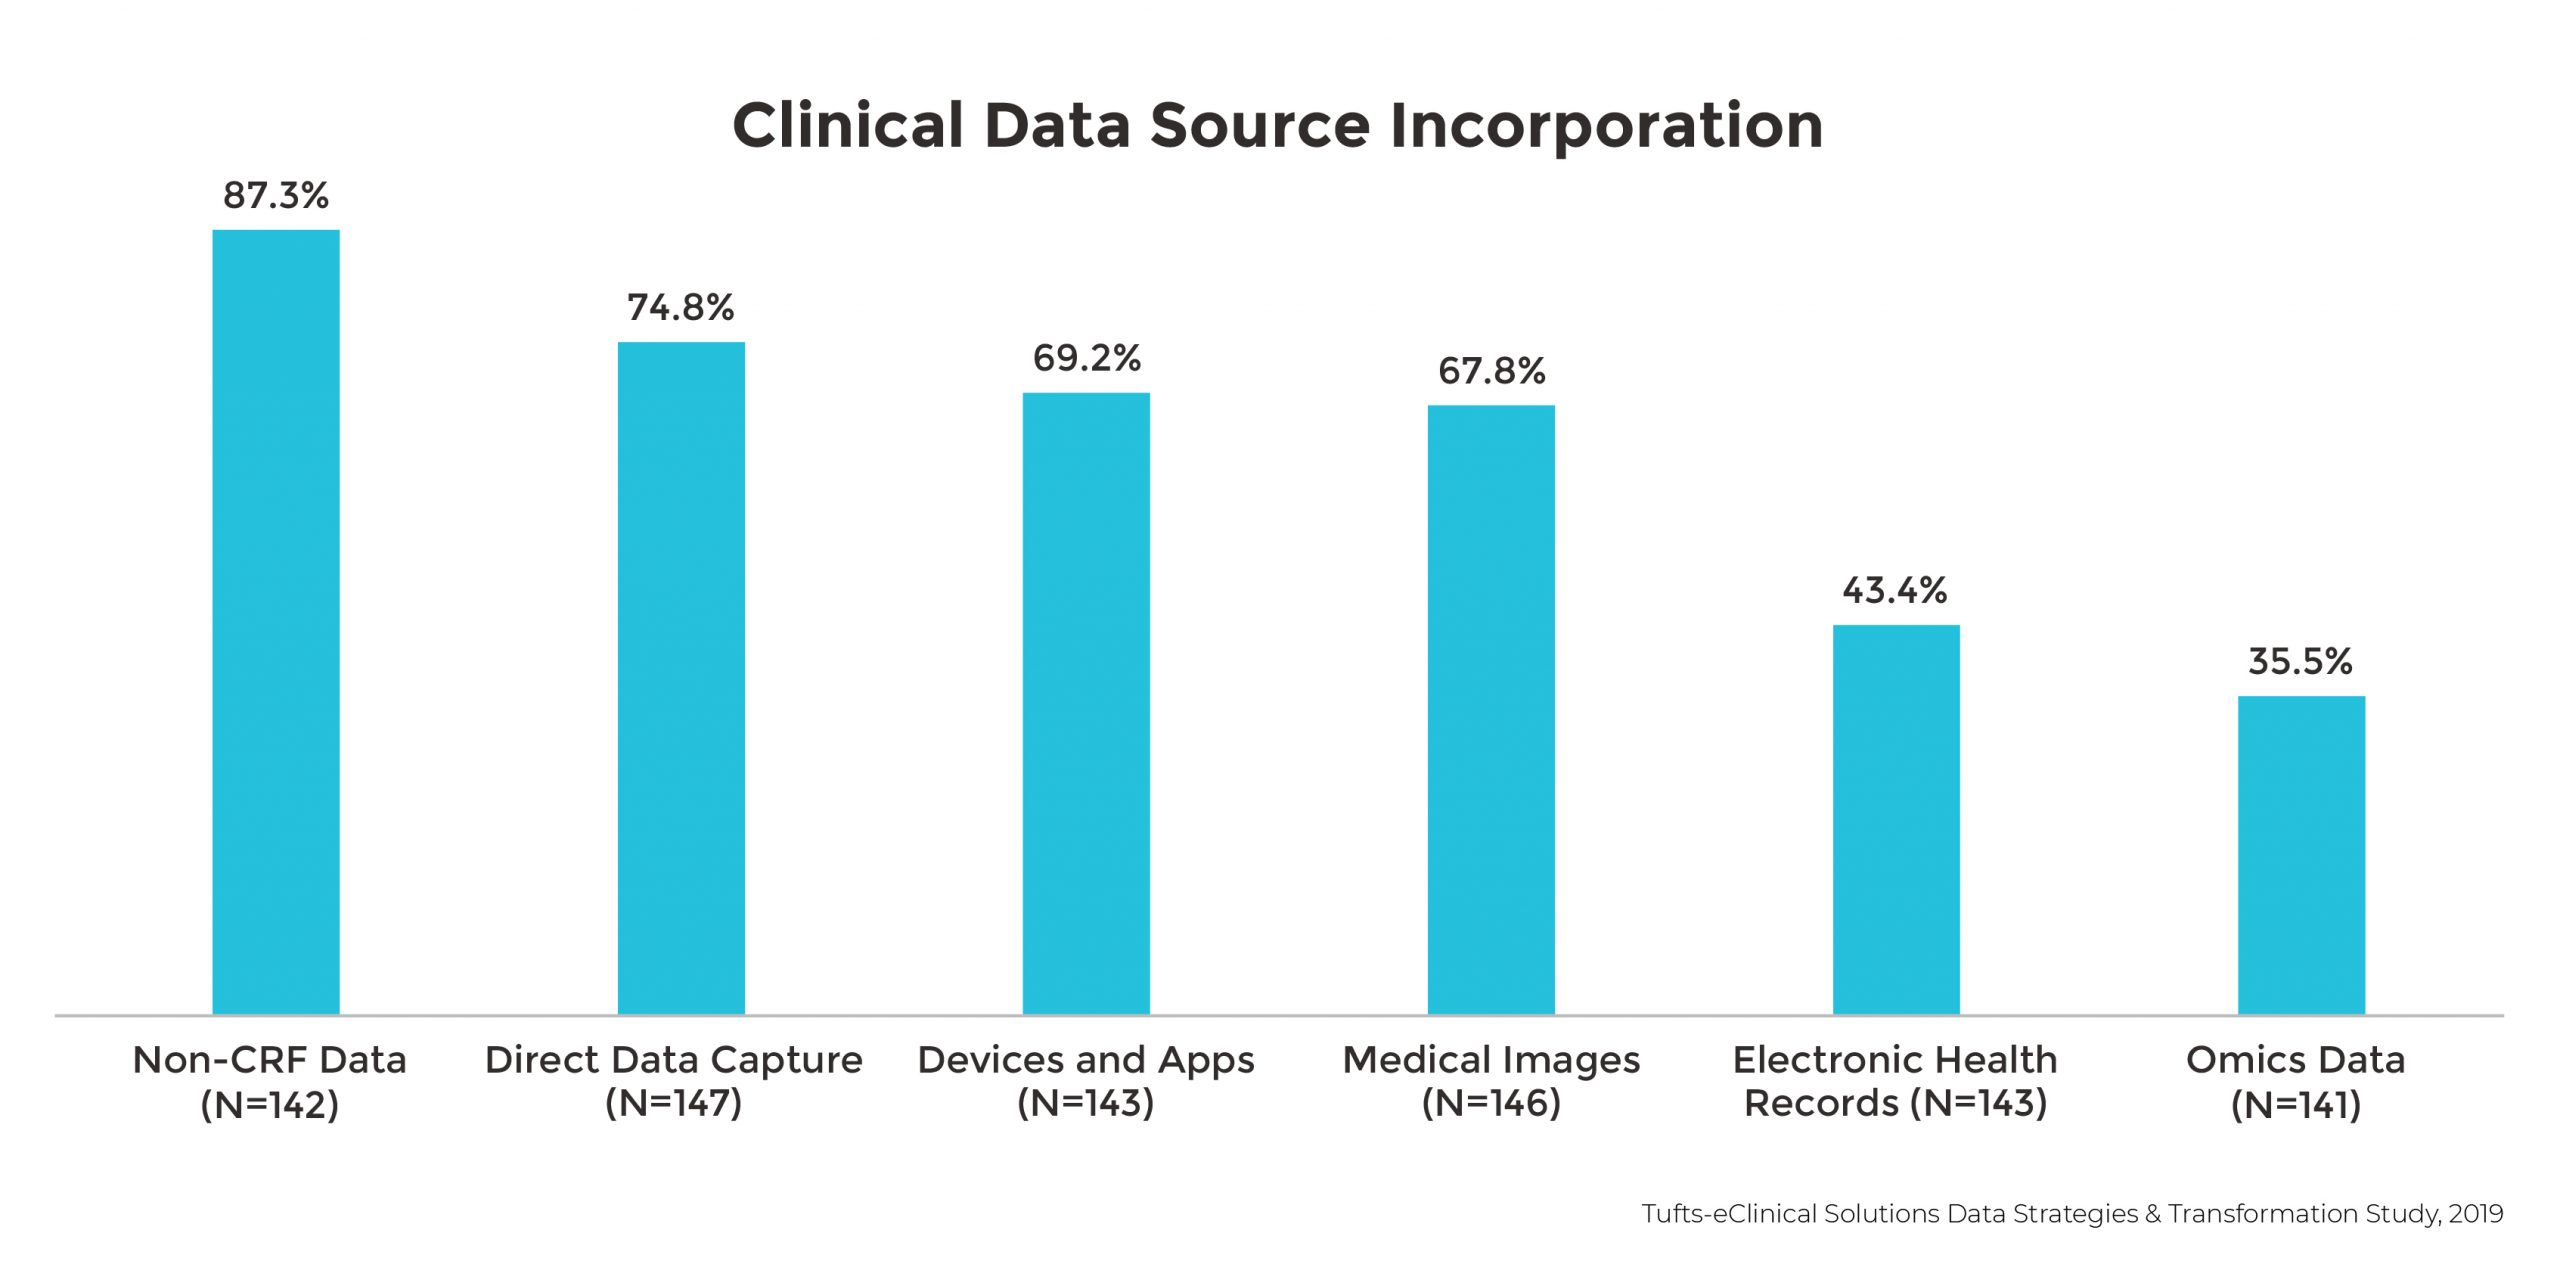 Clinical Data Source Incorporation